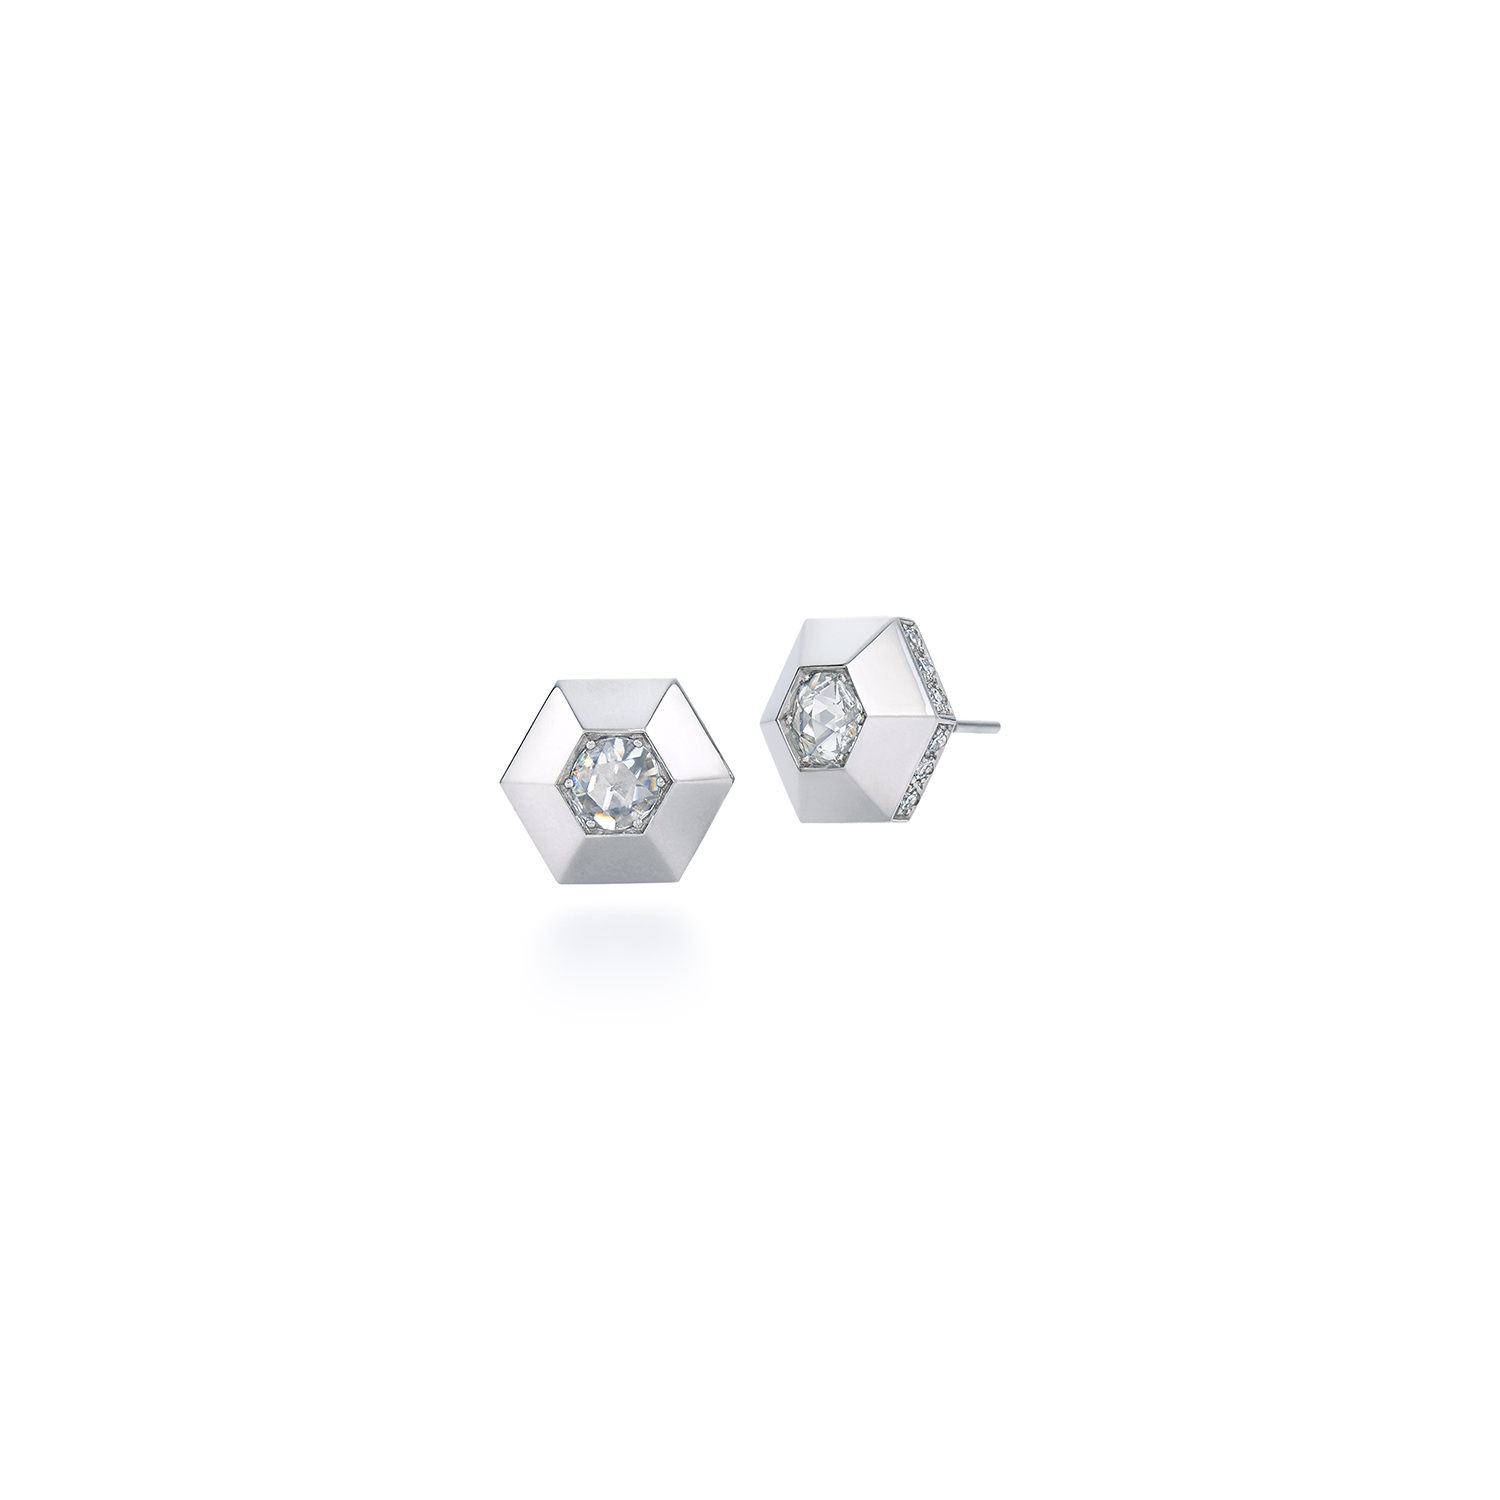 Signed Fred Leighton Hexagonal Diamond And Platinum Stud Earrings